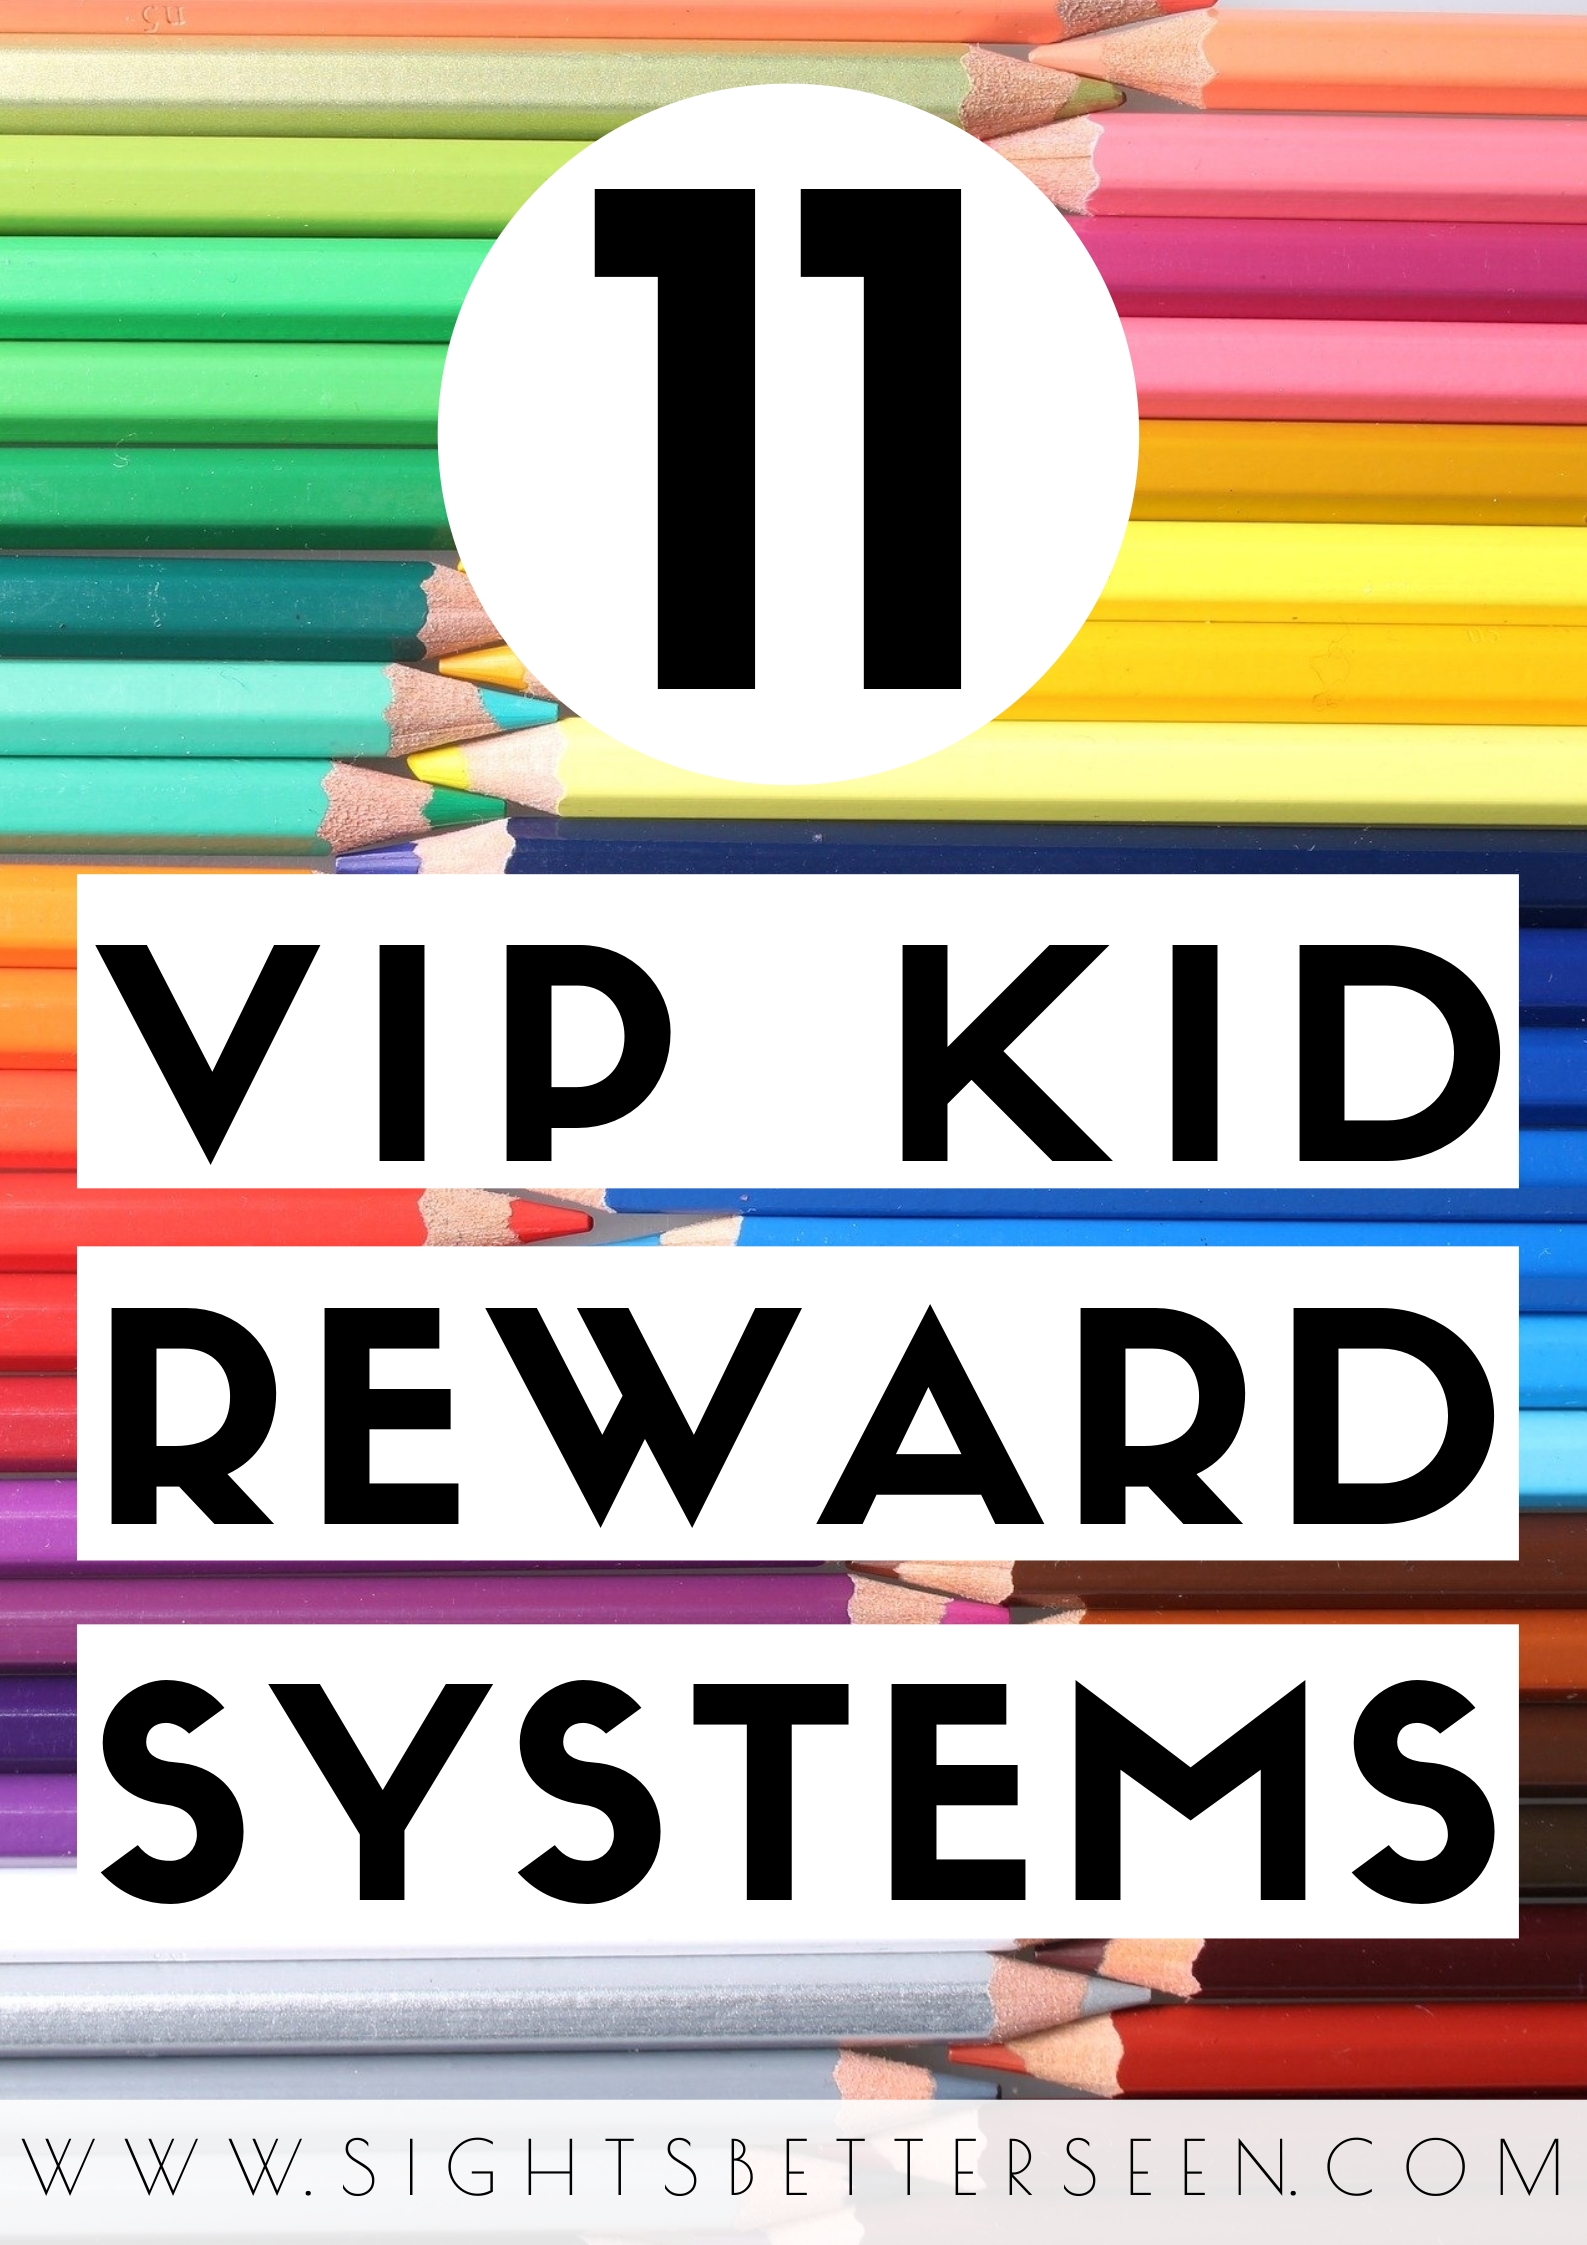 11 VIP Kid reward systems for your online classroom - great for traveling or digital nomad teachers!